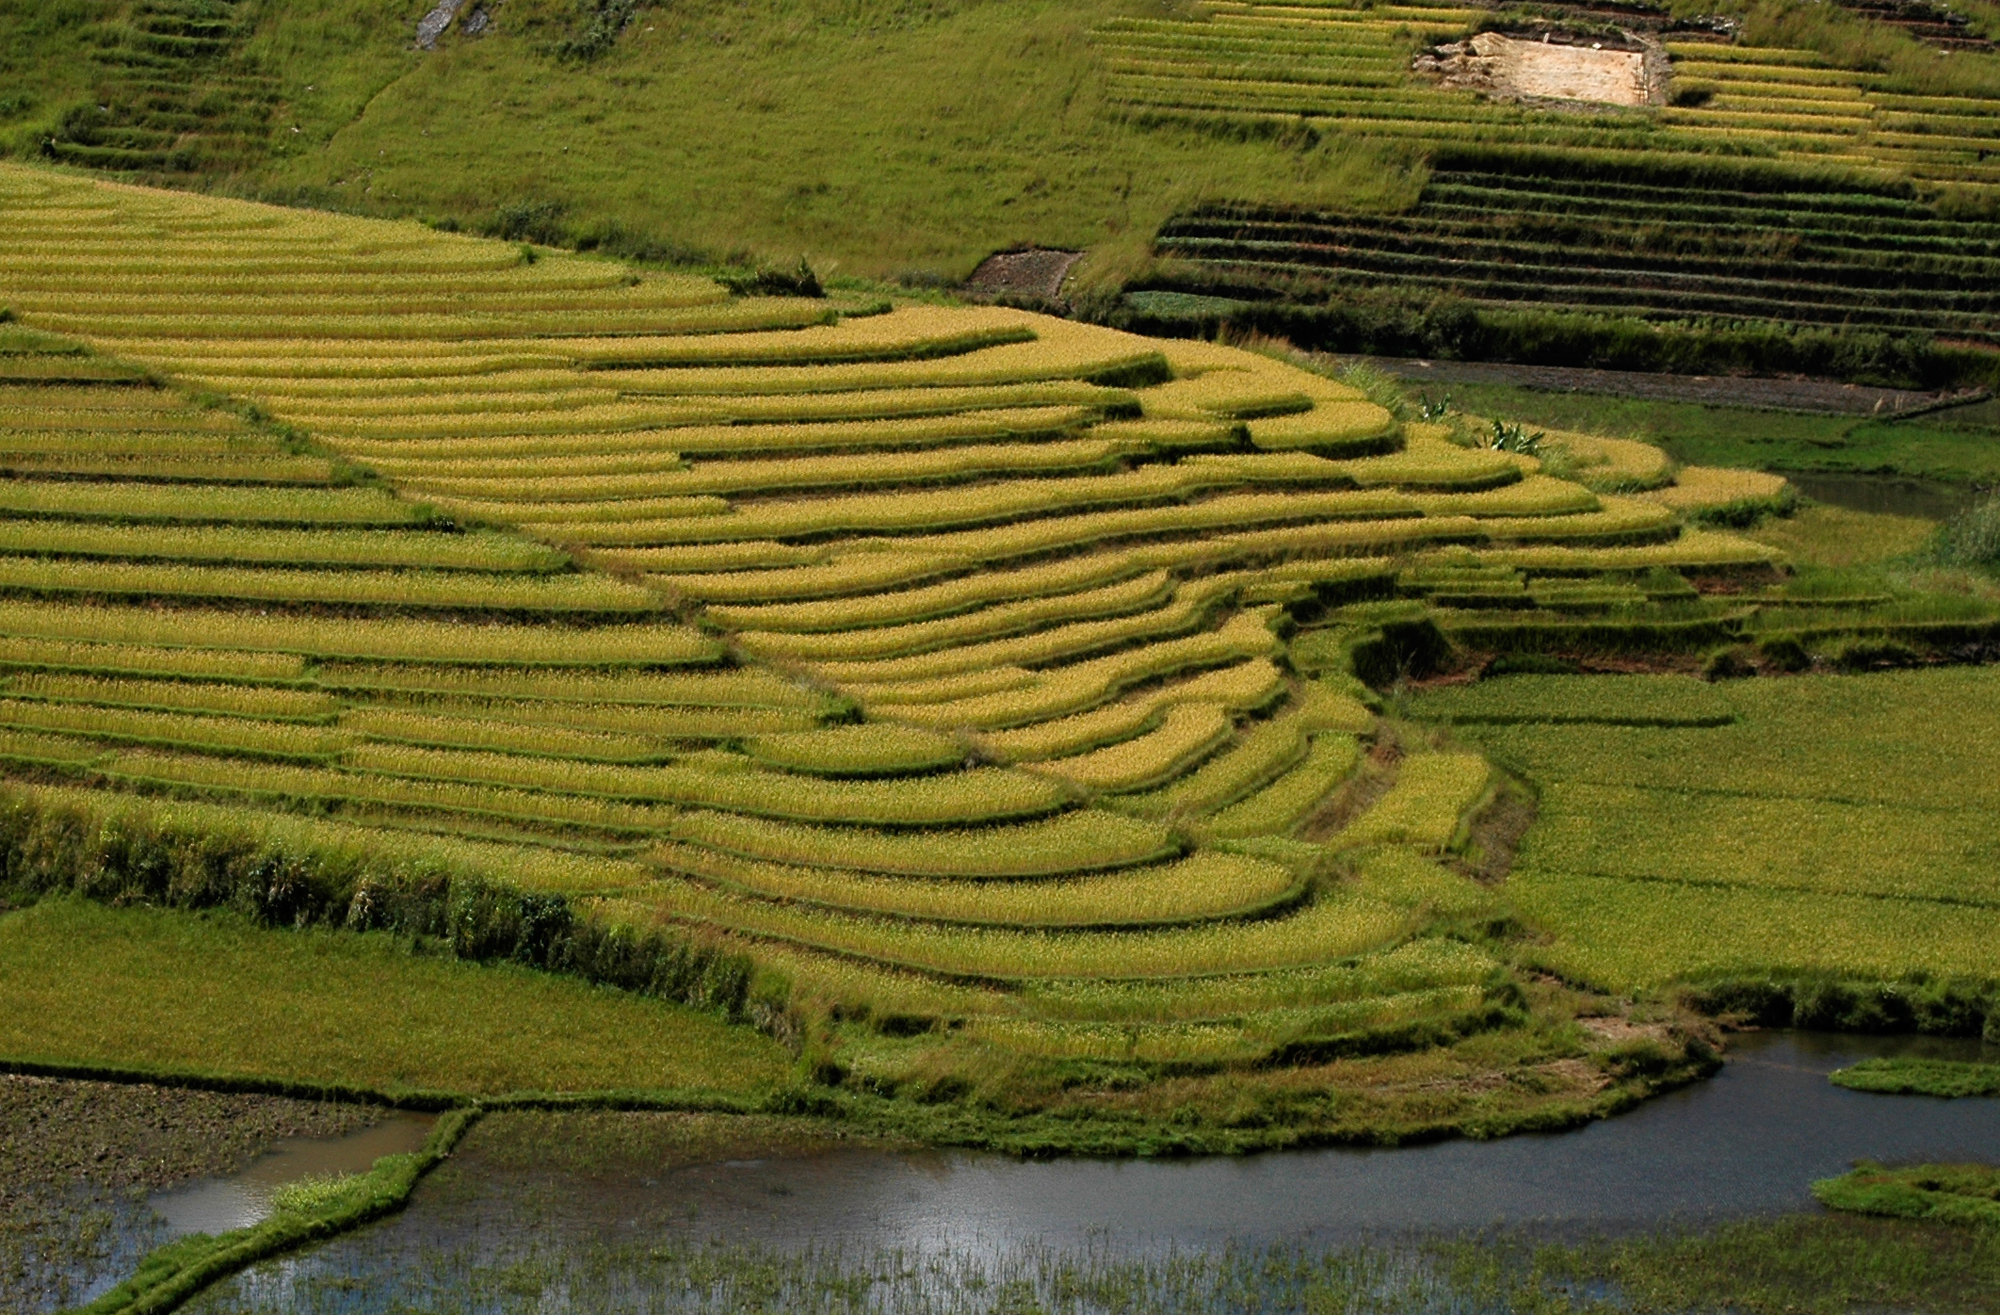 The Grain Of Life Rice Cultivation In Madagascar